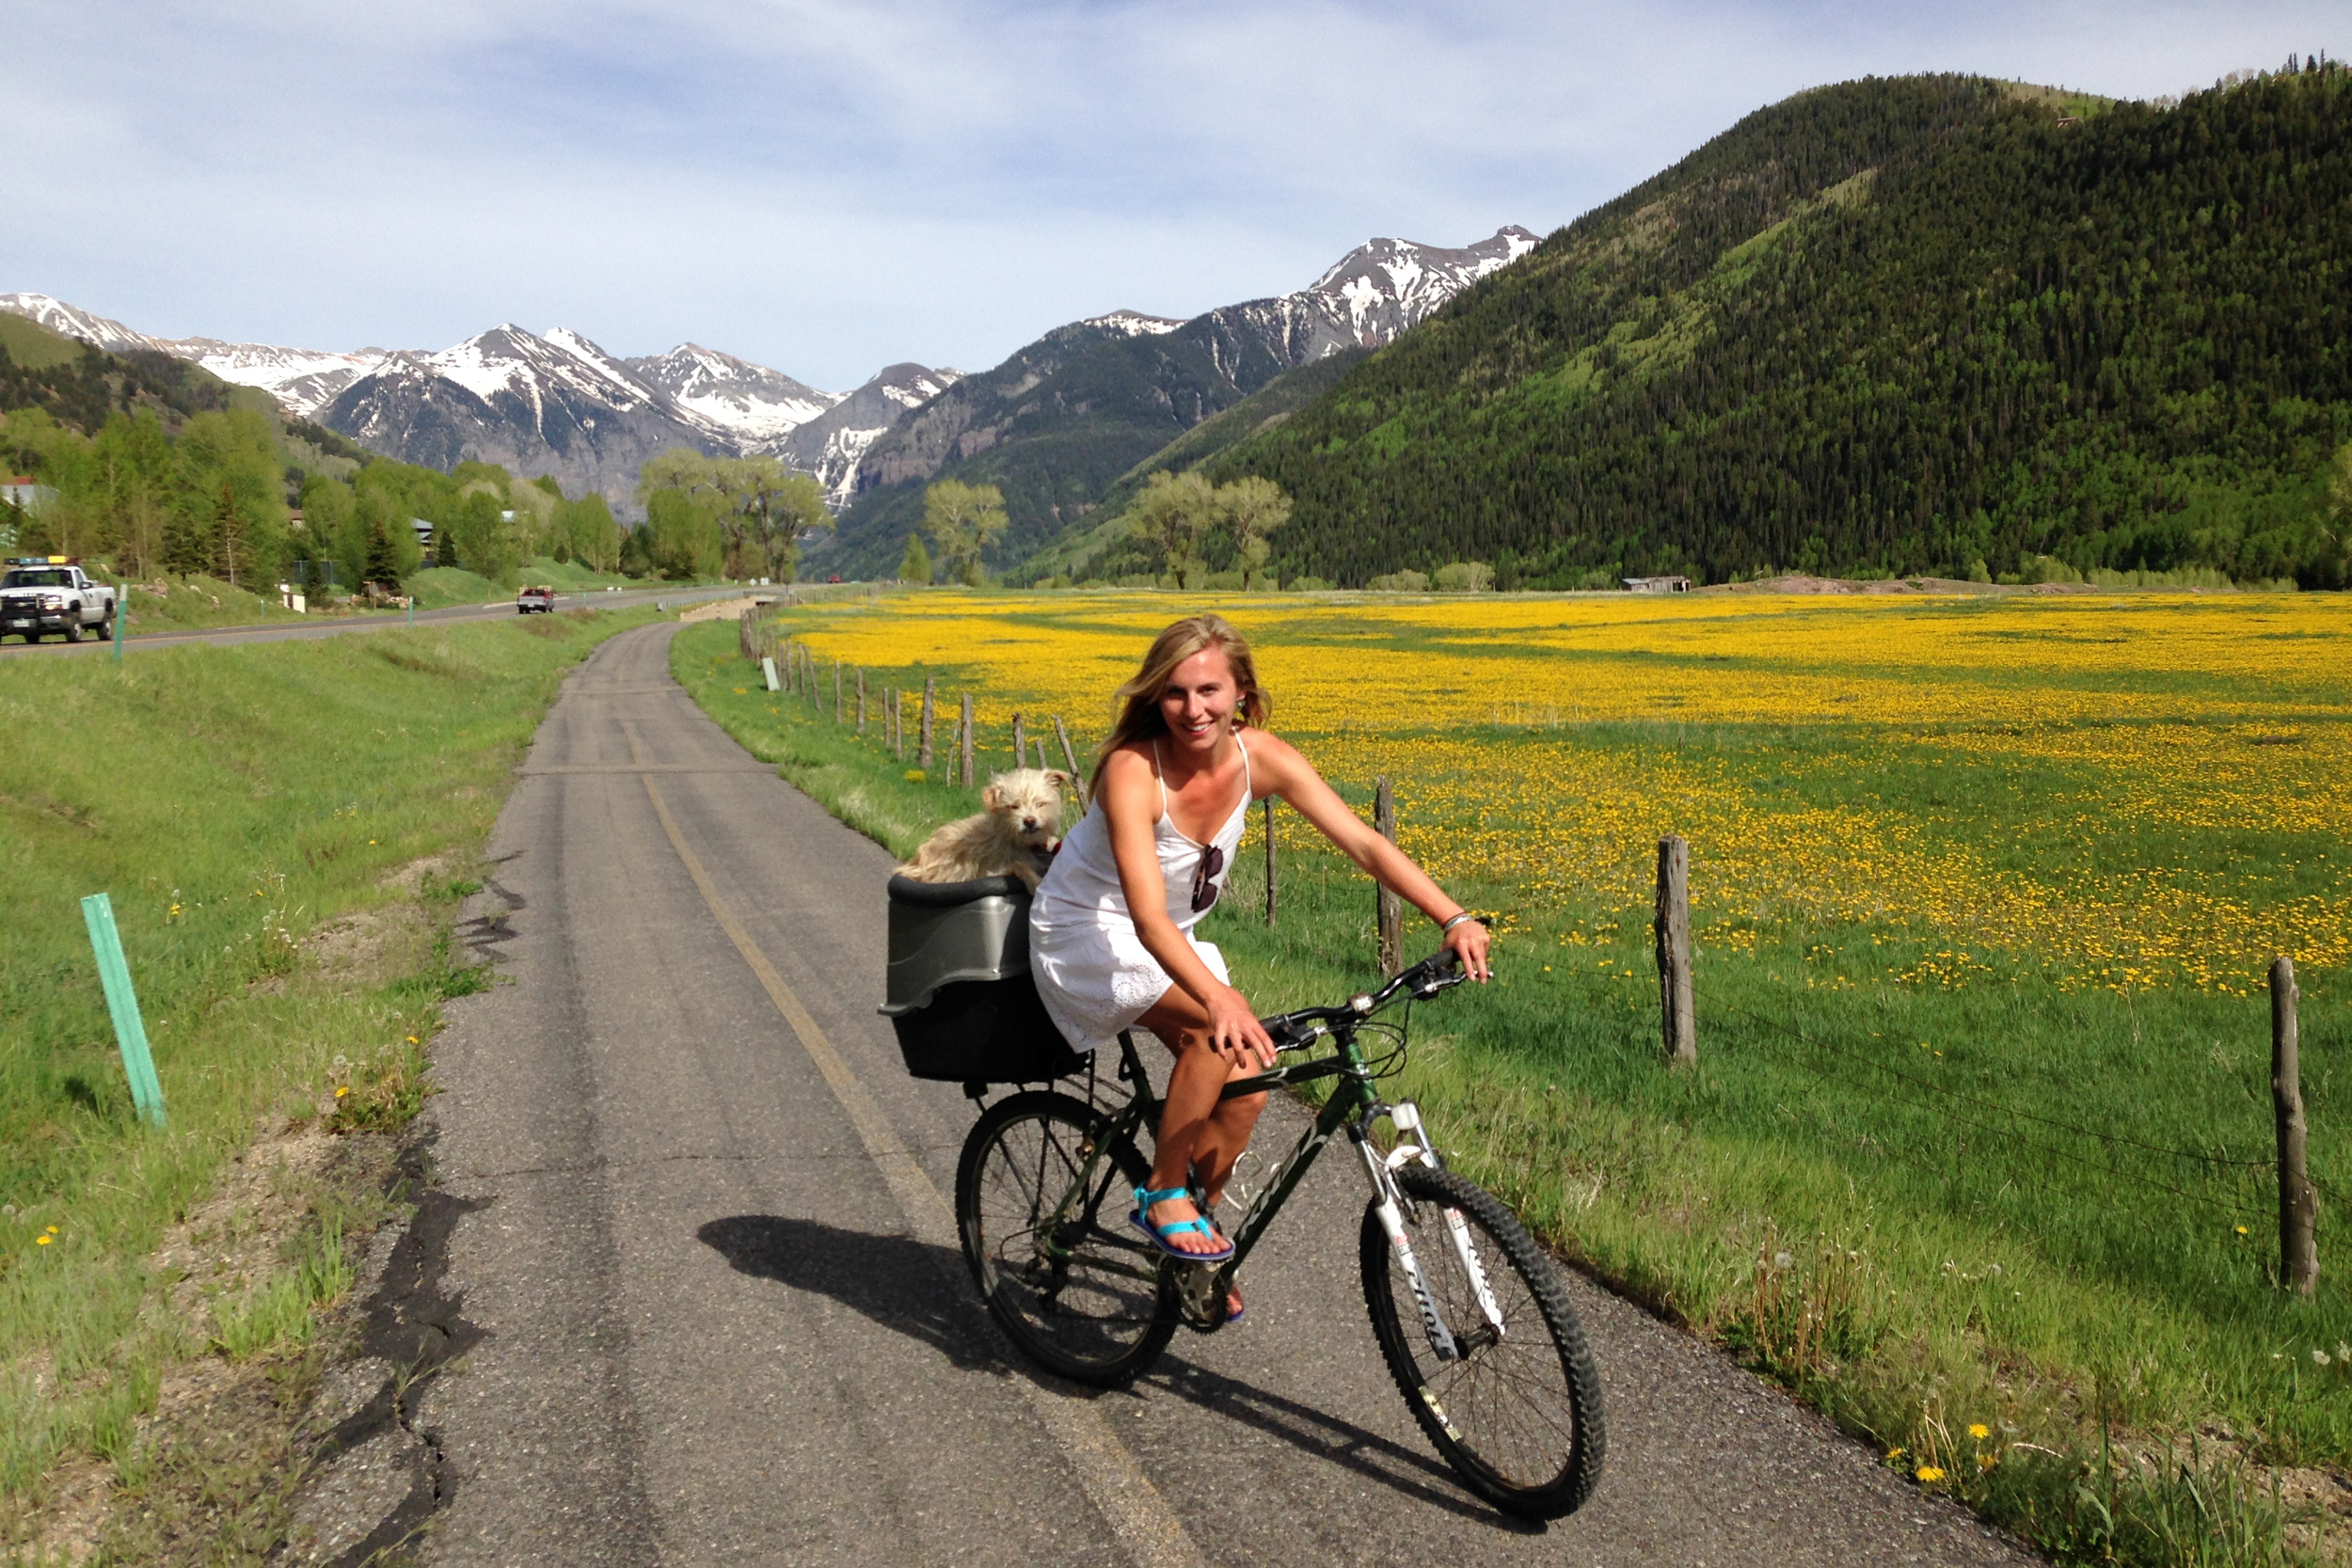 We stopped in Telluride in route to Moab, which we never ended up making it to (more on that later). We camped up on a pass outside of town, which allowed us to bike into town on their picturesque path everyday. Gromit loves any chance he gets to ride in the pooch pod.